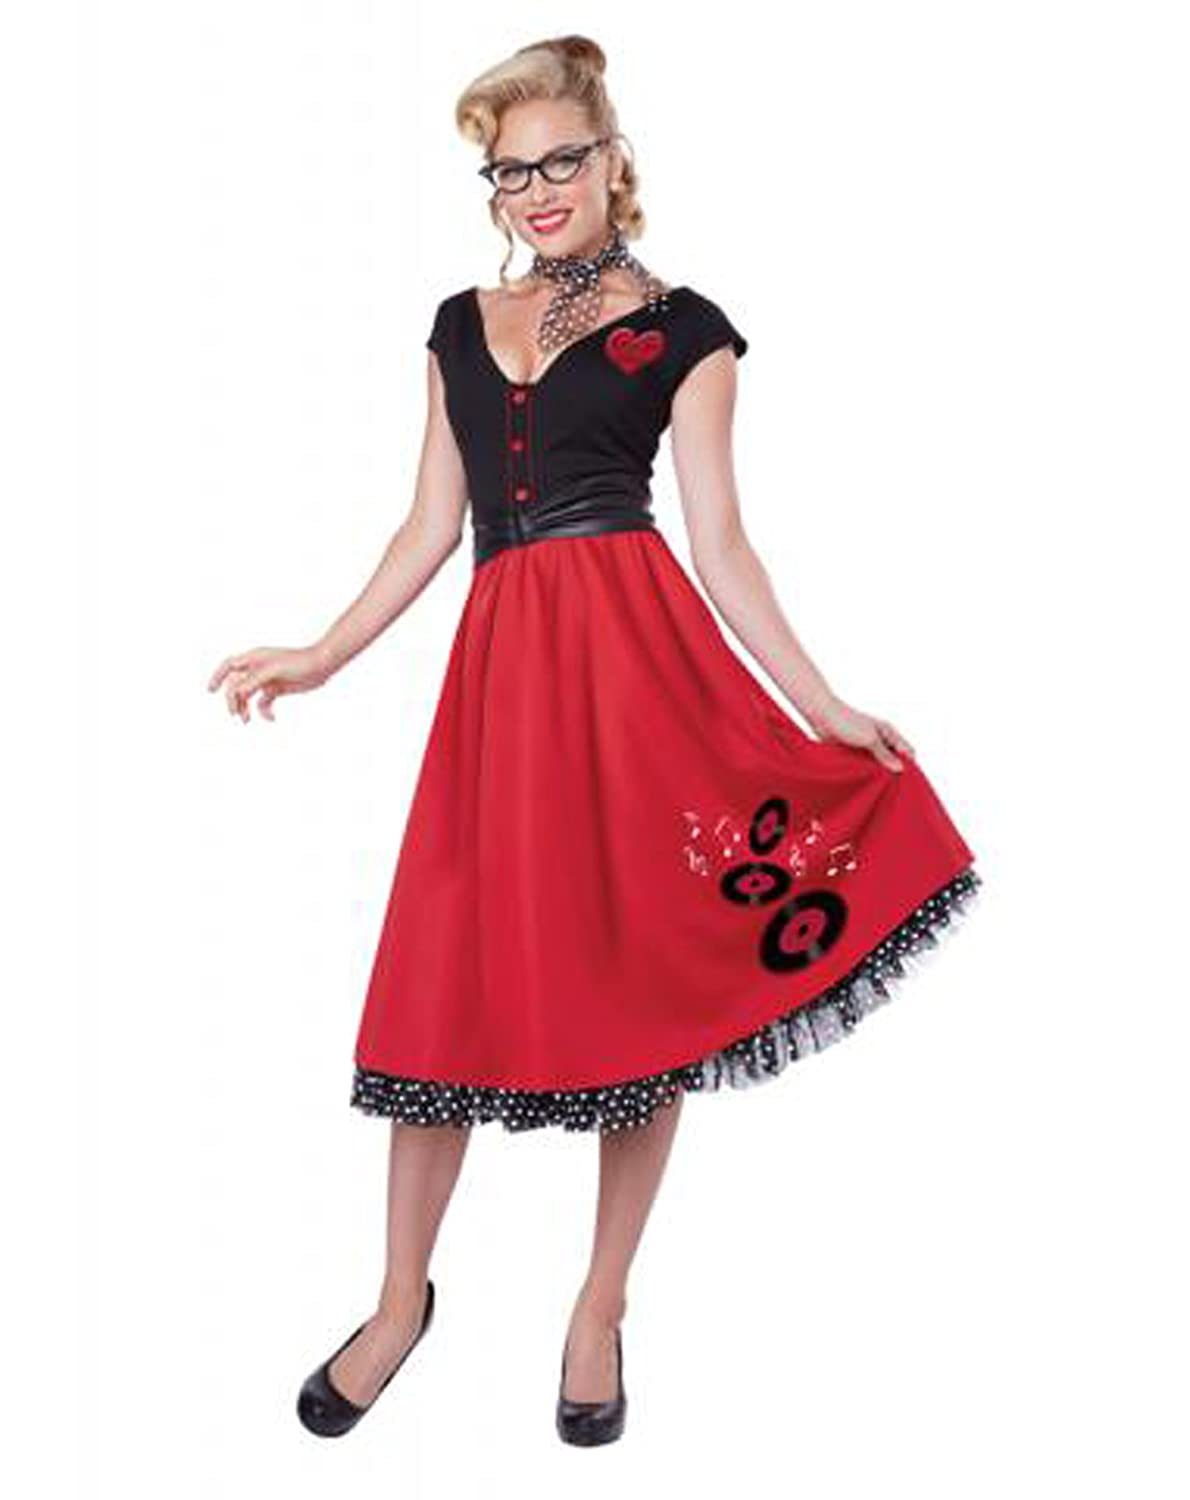 50s Costumes | 50s Halloween Costumes  Rock N Roll Sweetheart 50s Pin Up Costume  AT vintagedancer.com